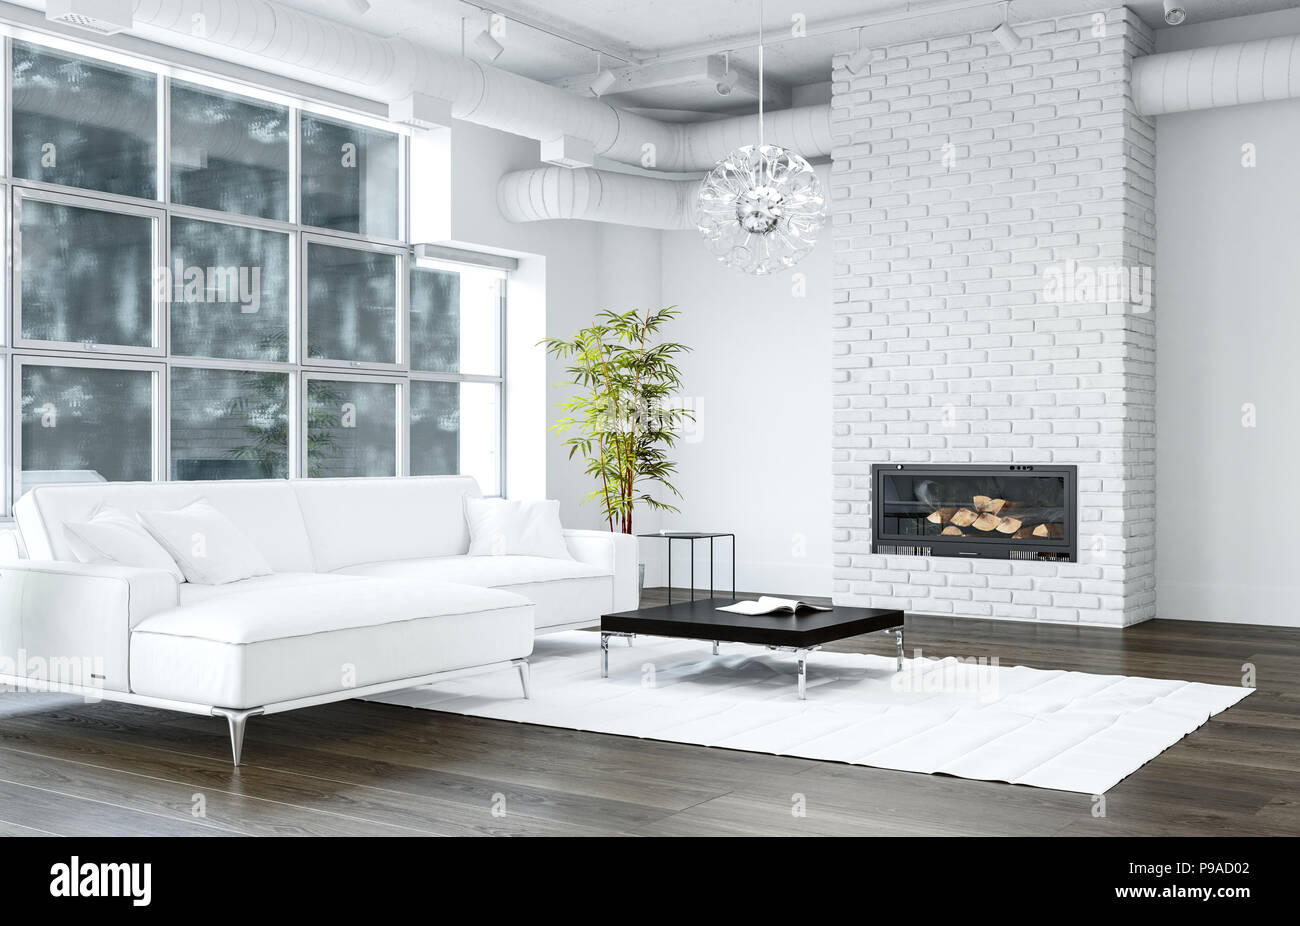 White Living Room With Brick Texture Fireplace Next To Sofa And Black Table Standing On White Rug And Modern Chandelier Hanging From Ceiling 3d Rende Stock Photo Alamy